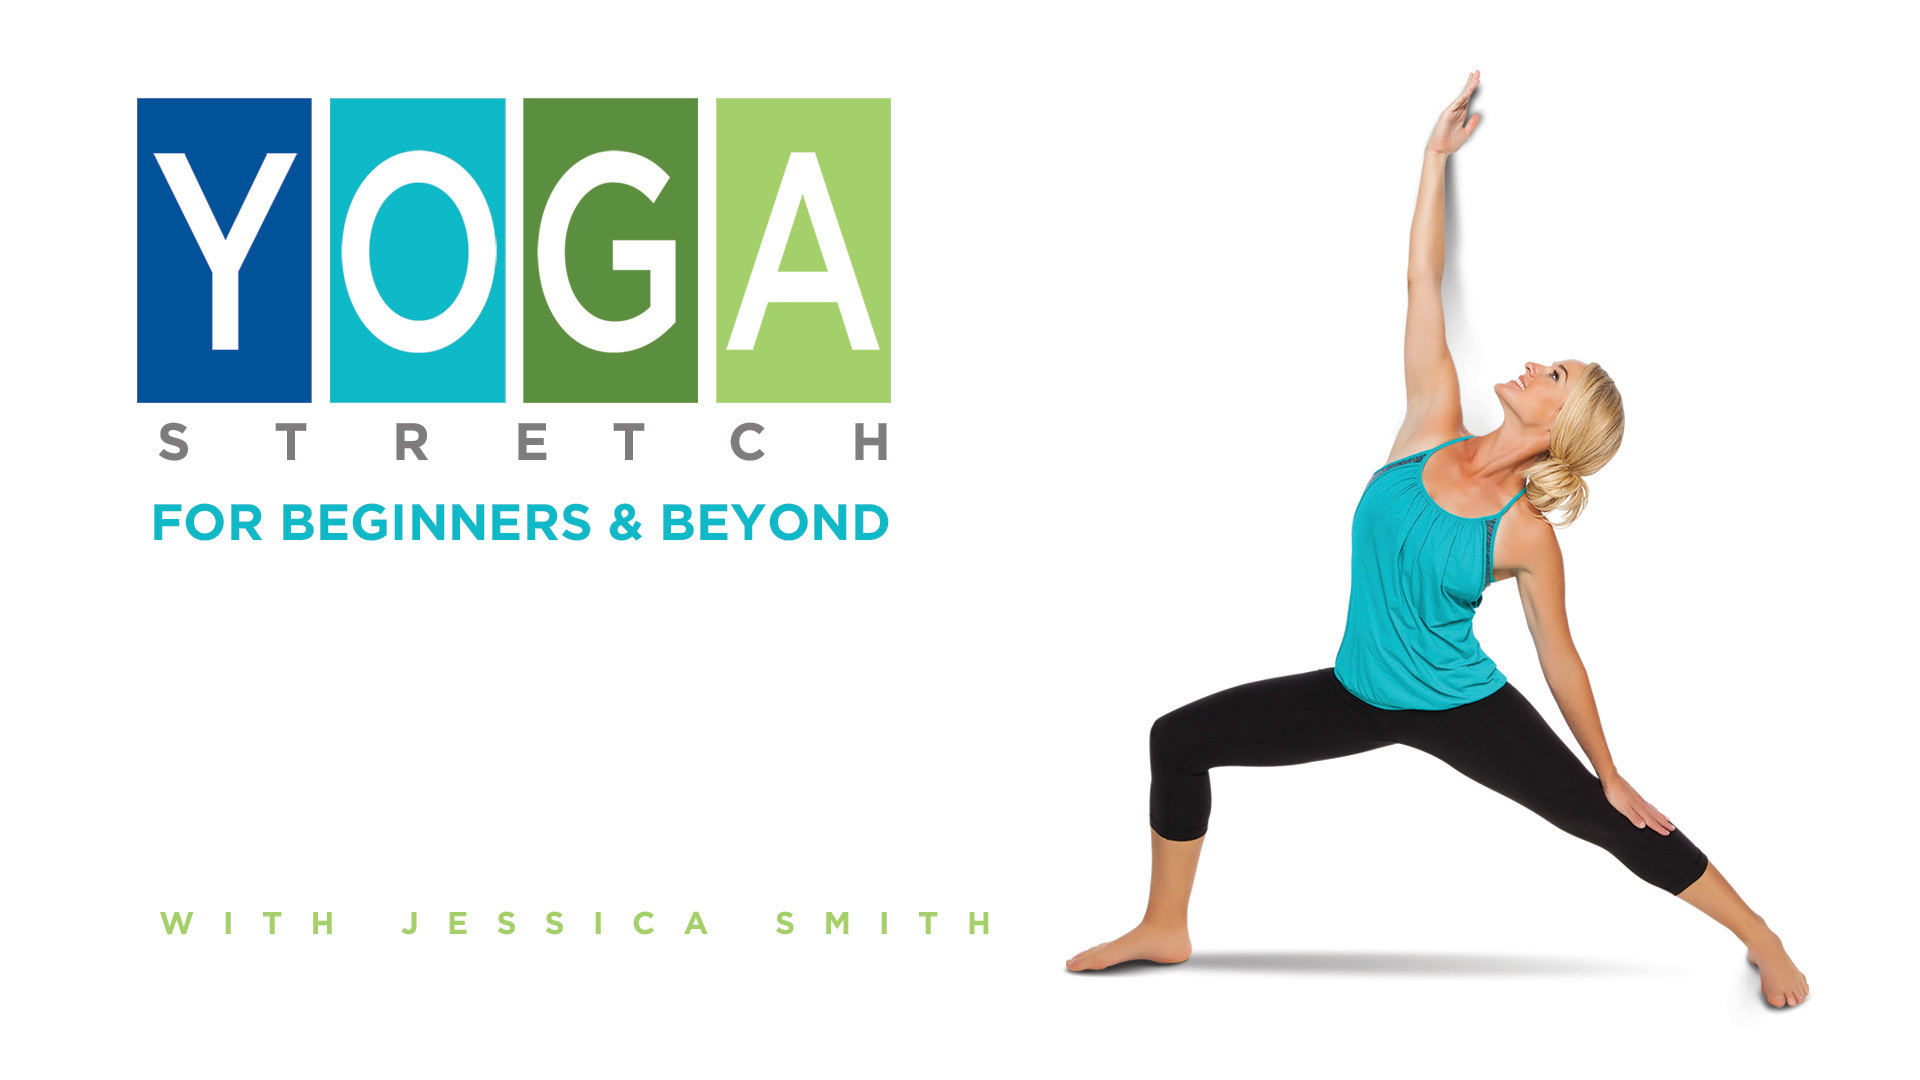 NS15072_JessicaSmith_YogaStretch_AmazonArtwork_1920x1080